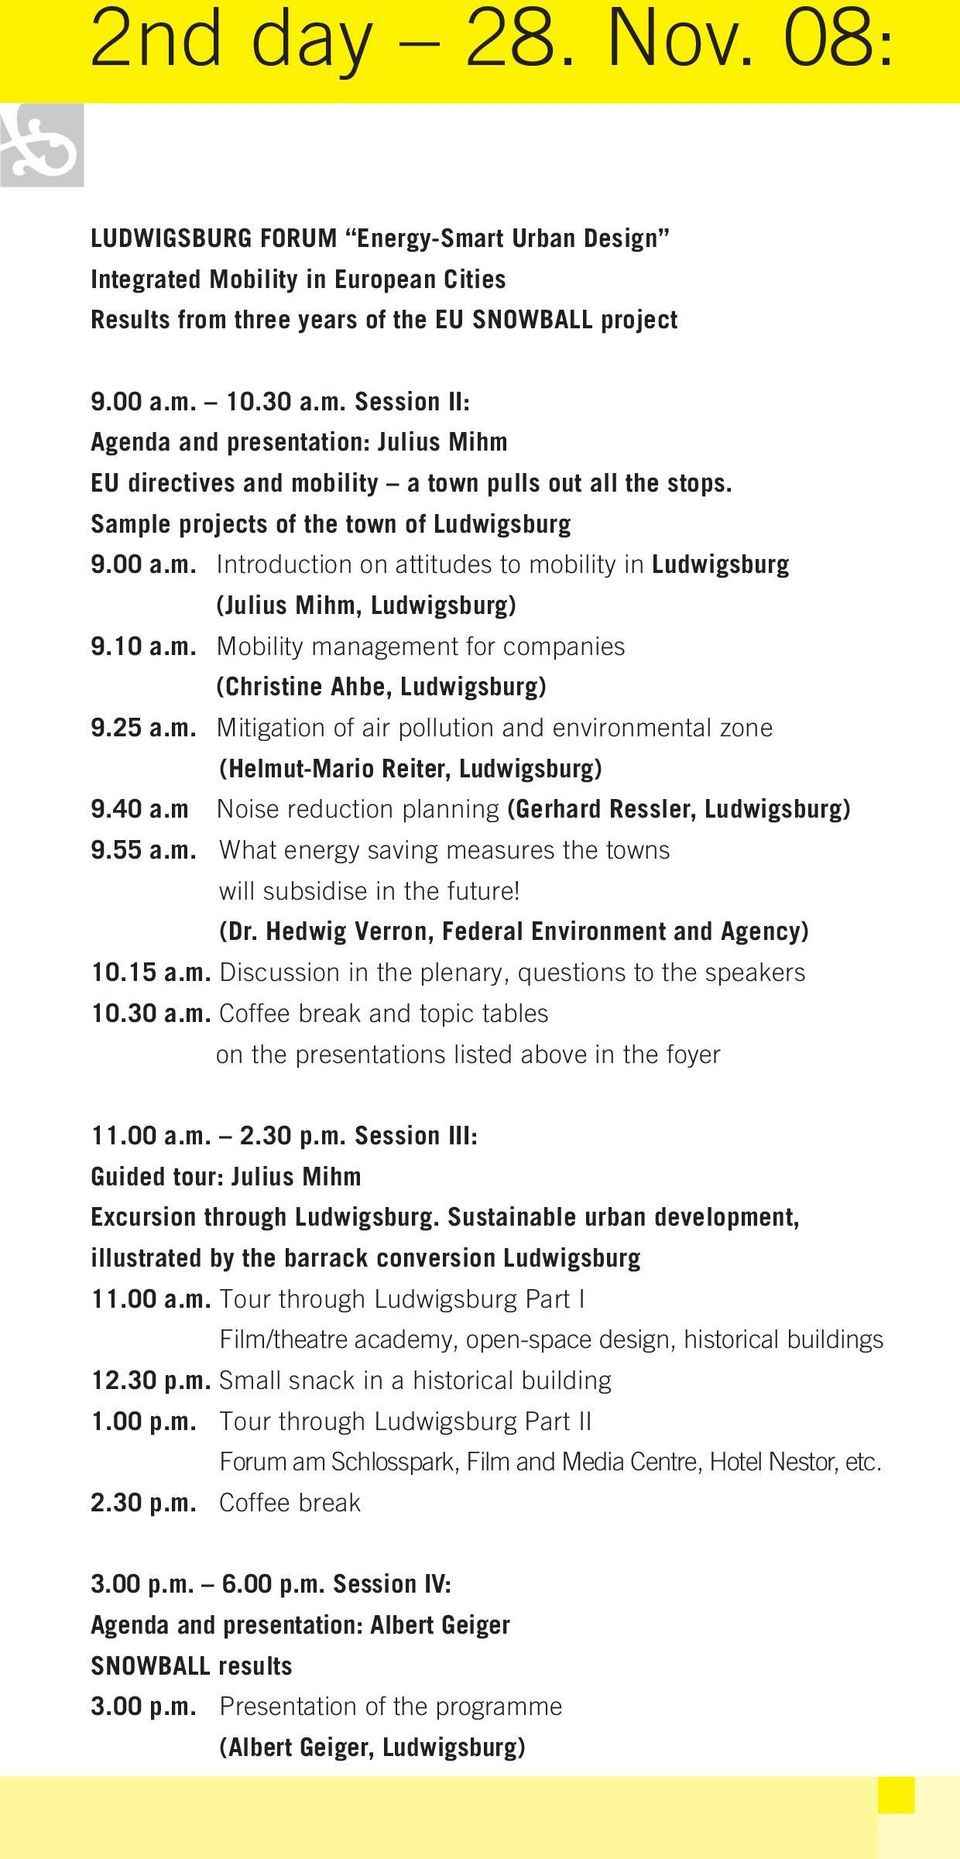 25 a.m. Mitigation of air pollution and environmental zone (Helmut-Mario Reiter, Ludwigsburg) 9.40 a.m Noise reduction planning (Gerhard Ressler, Ludwigsburg) 9.55 a.m. What energy saving measures the towns will subsidise in the future!